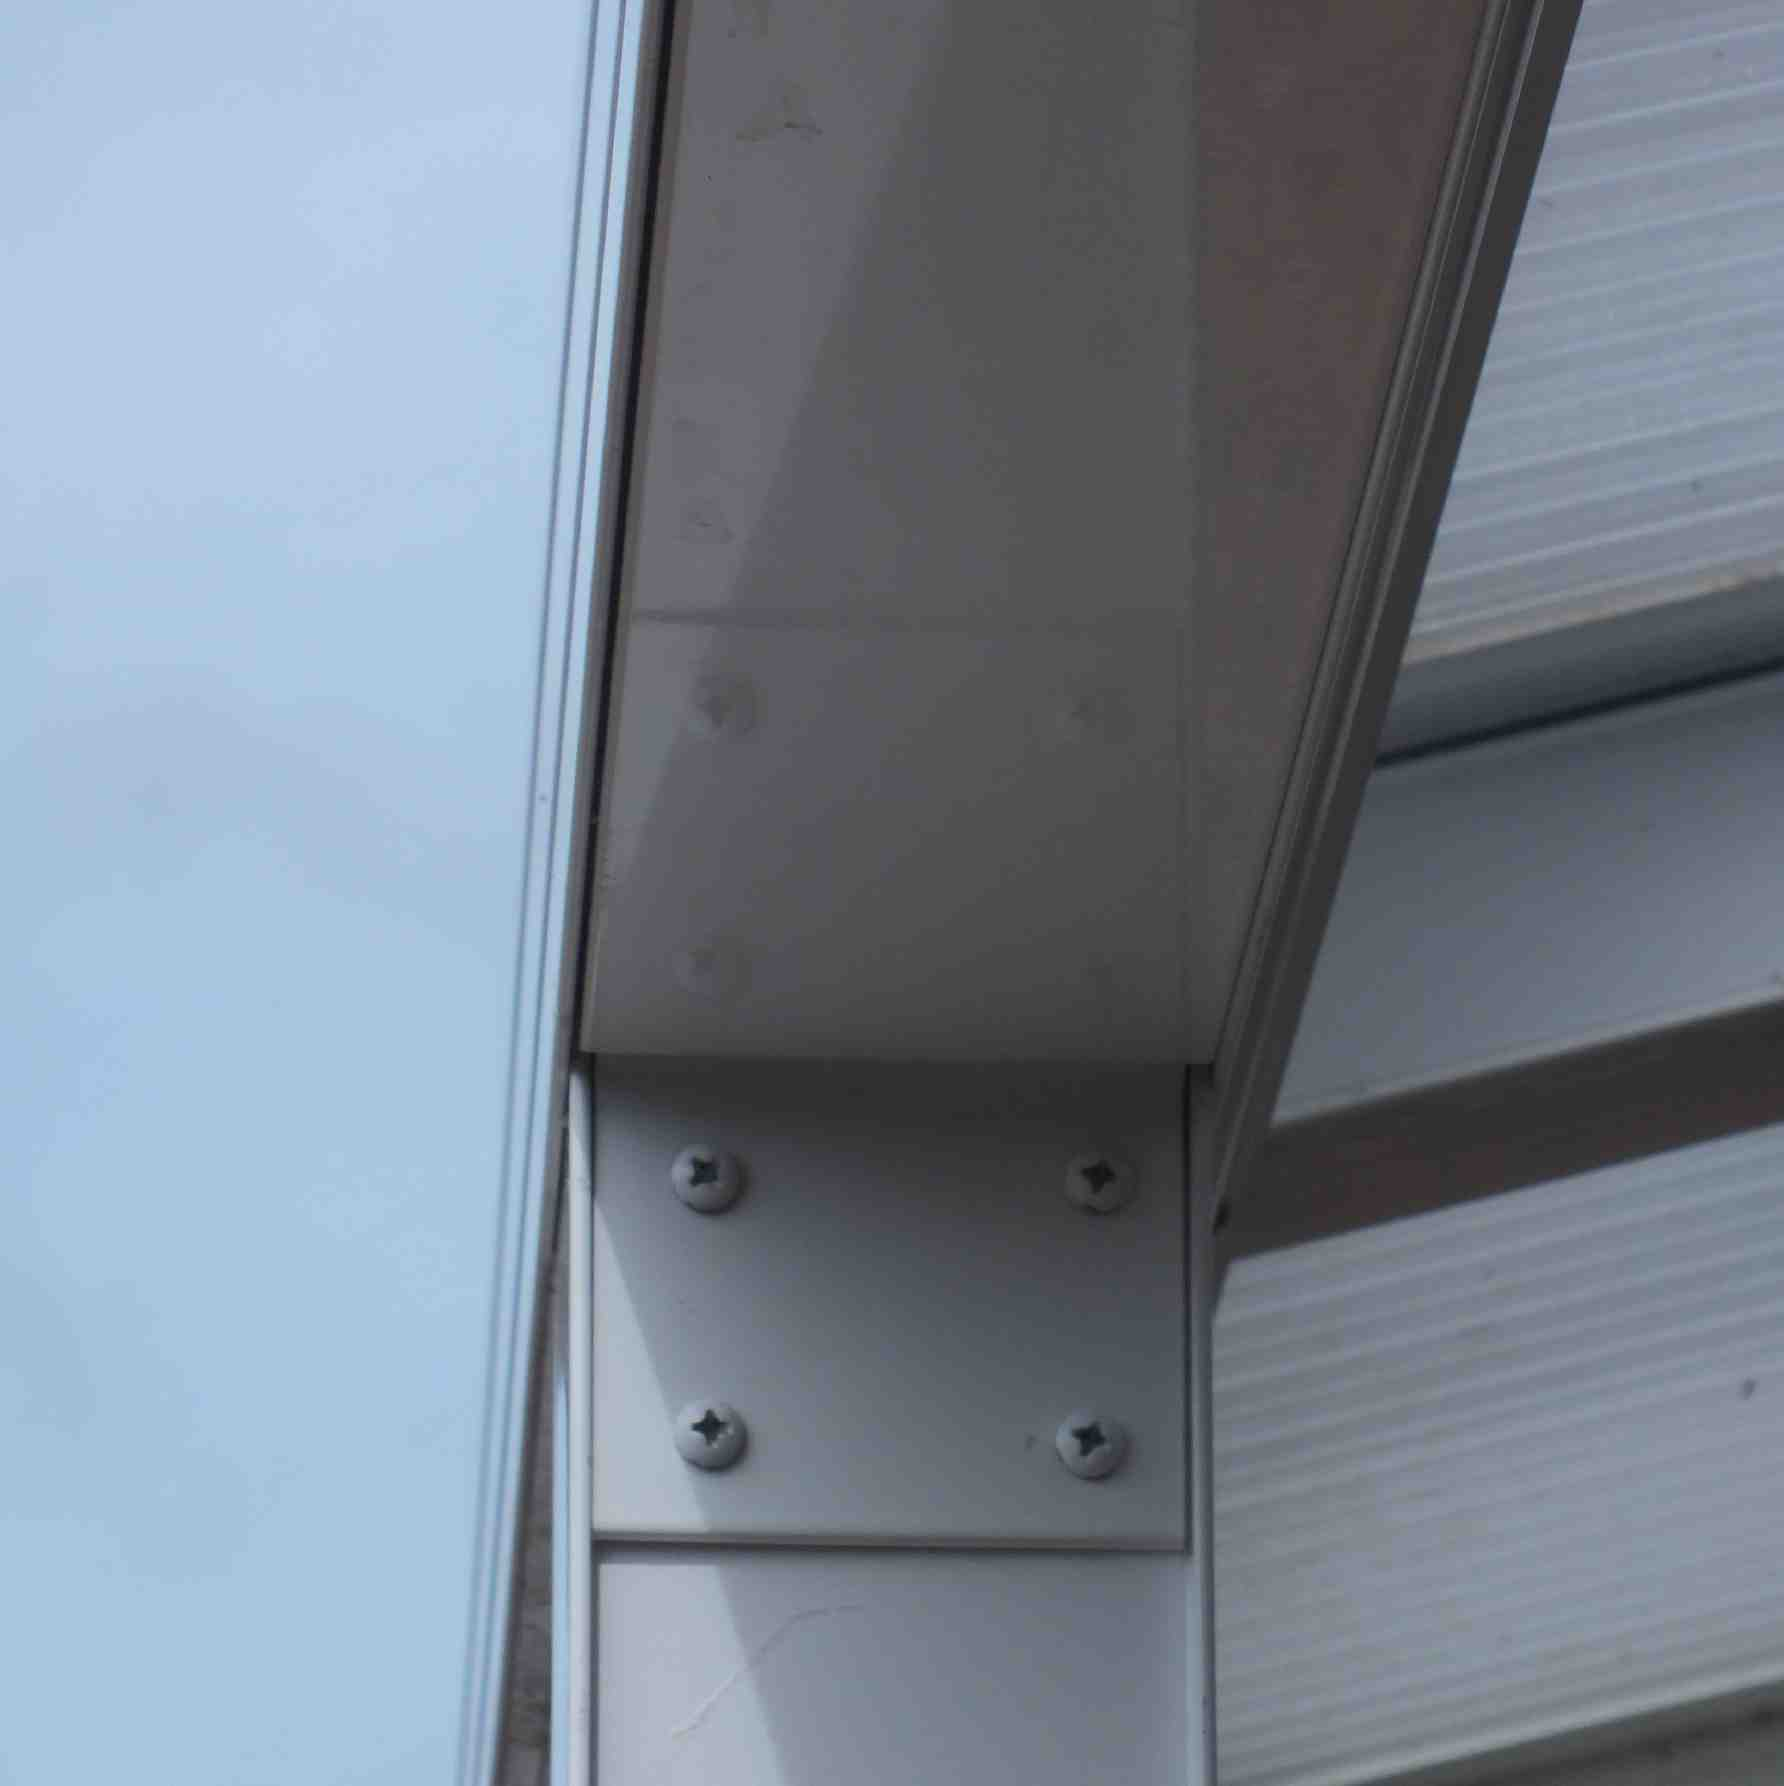 Affordable Omega Verandah with 6mm Glass Clear Plate Polycarbonate Glazing - 3.5m (W) x 2.5m (P), (3) Supporting Posts